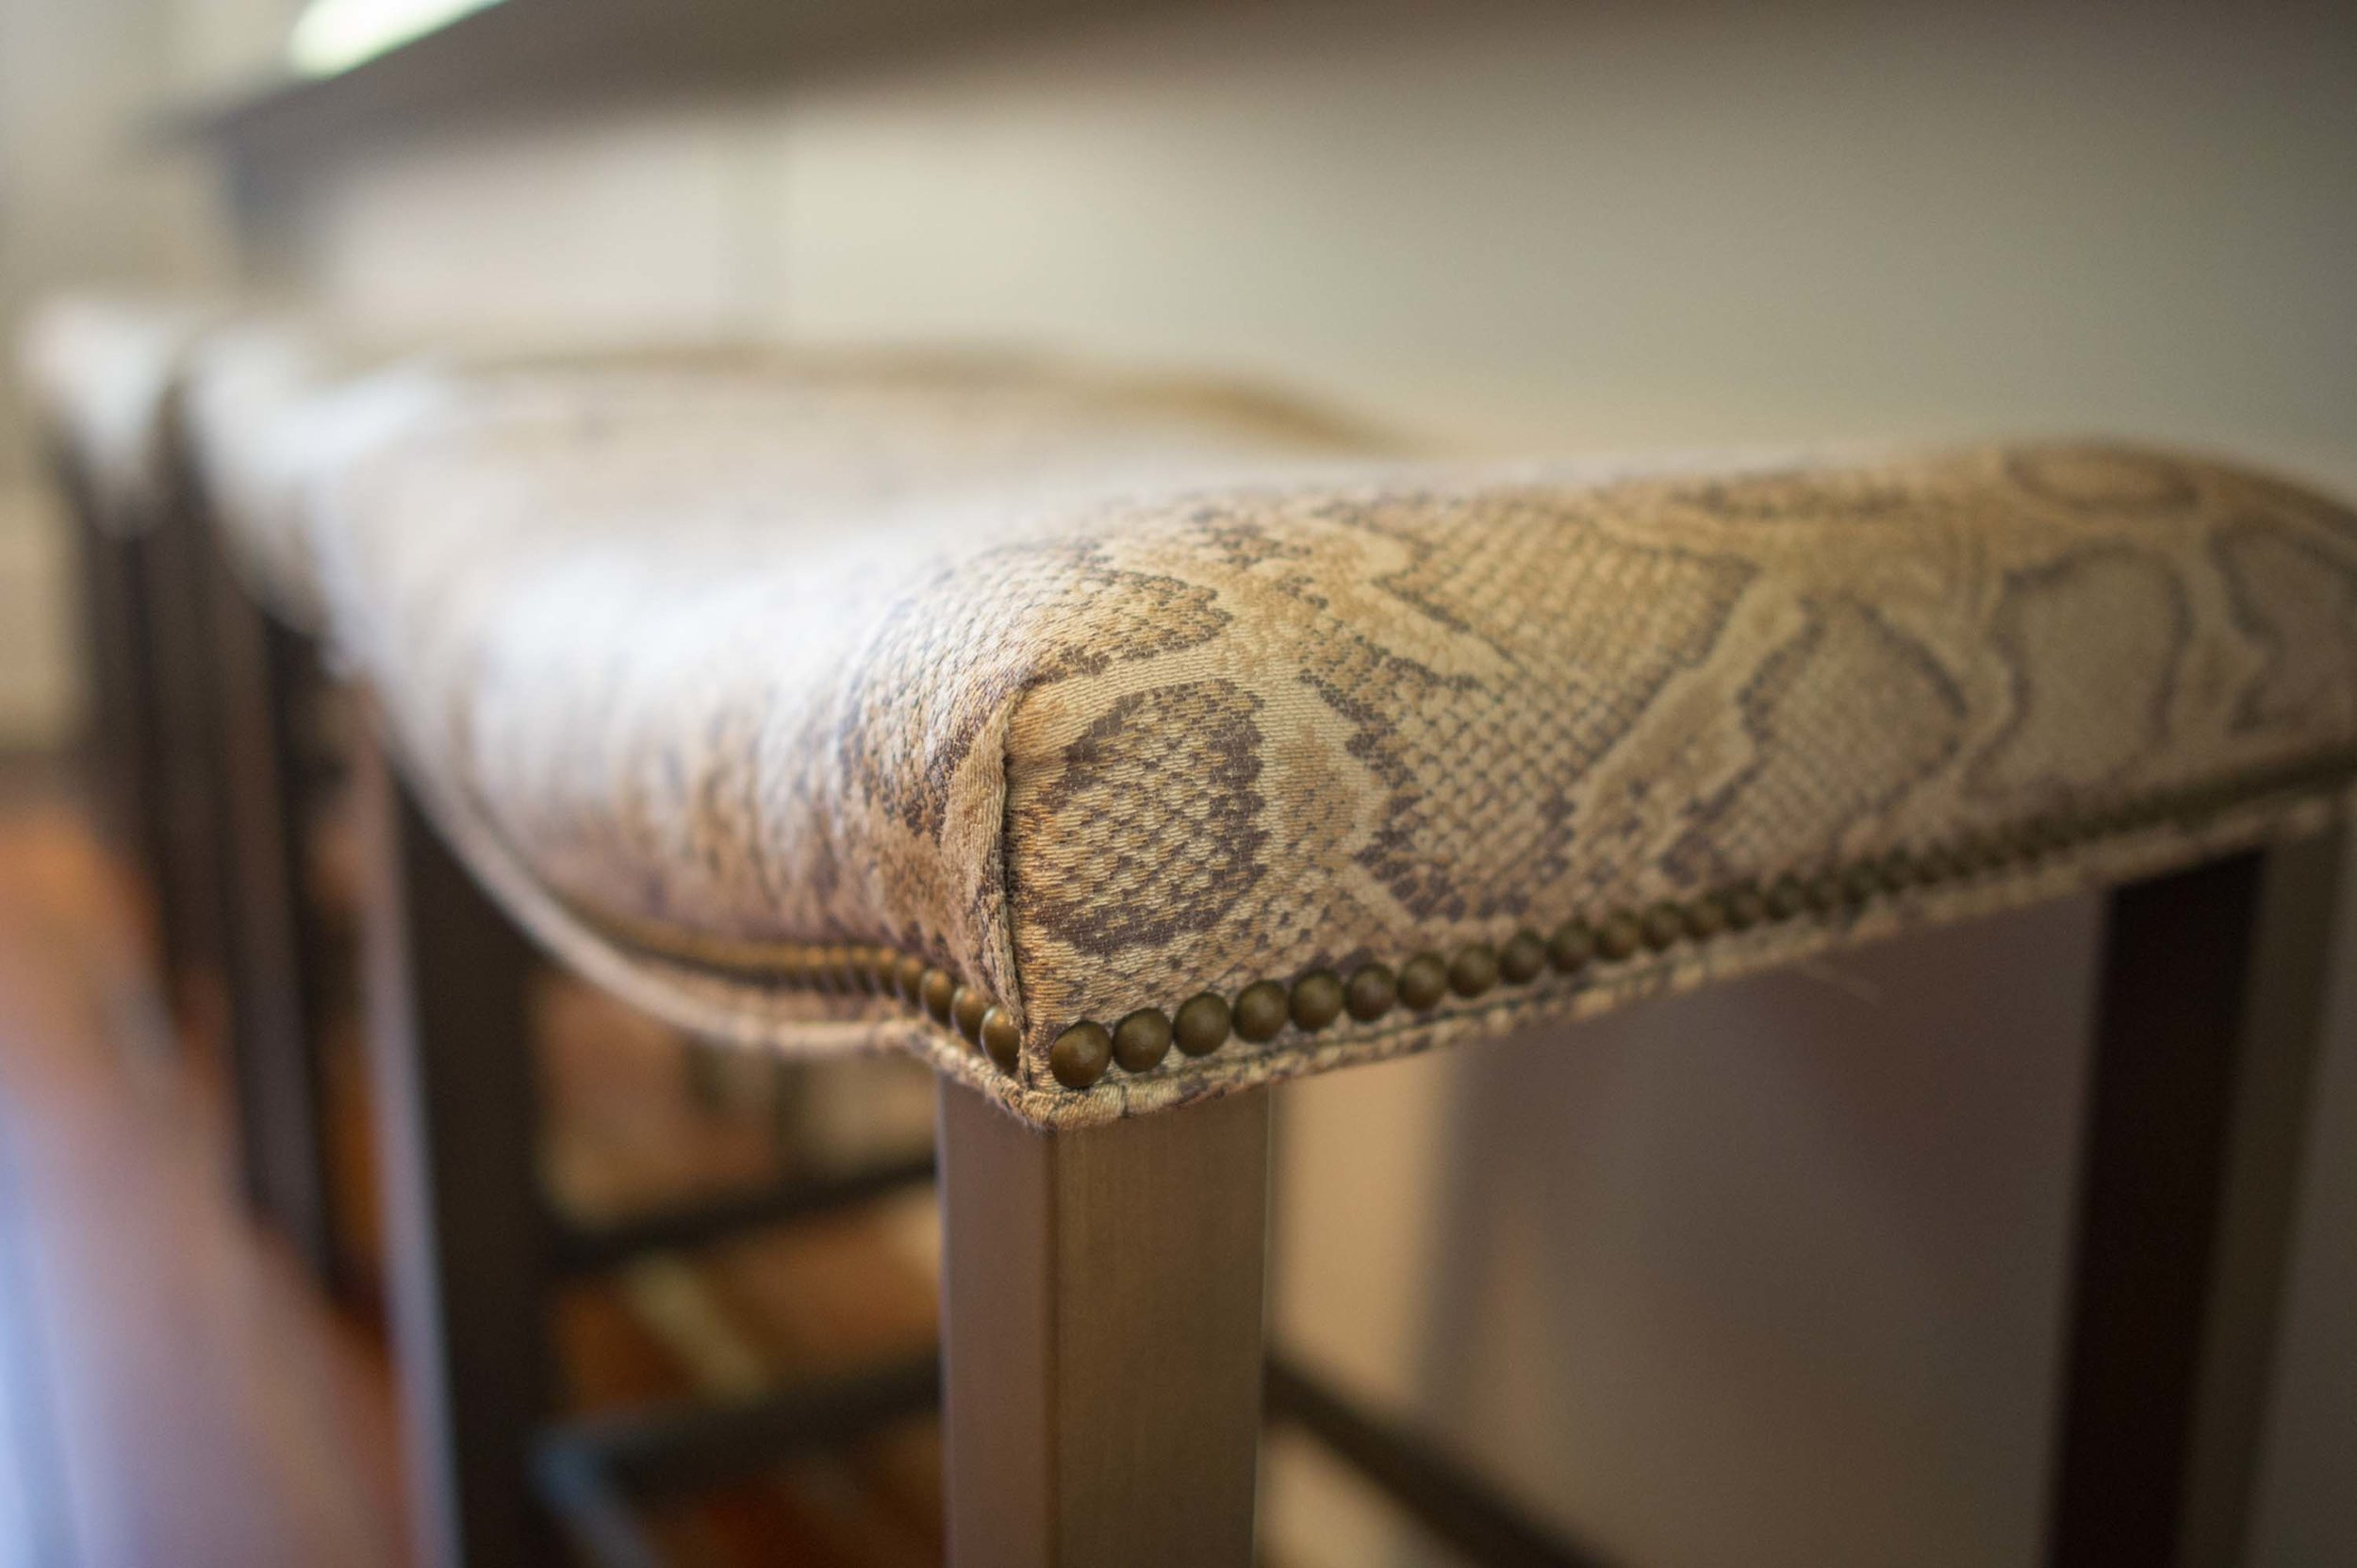 Snake skin texture on wooden chair